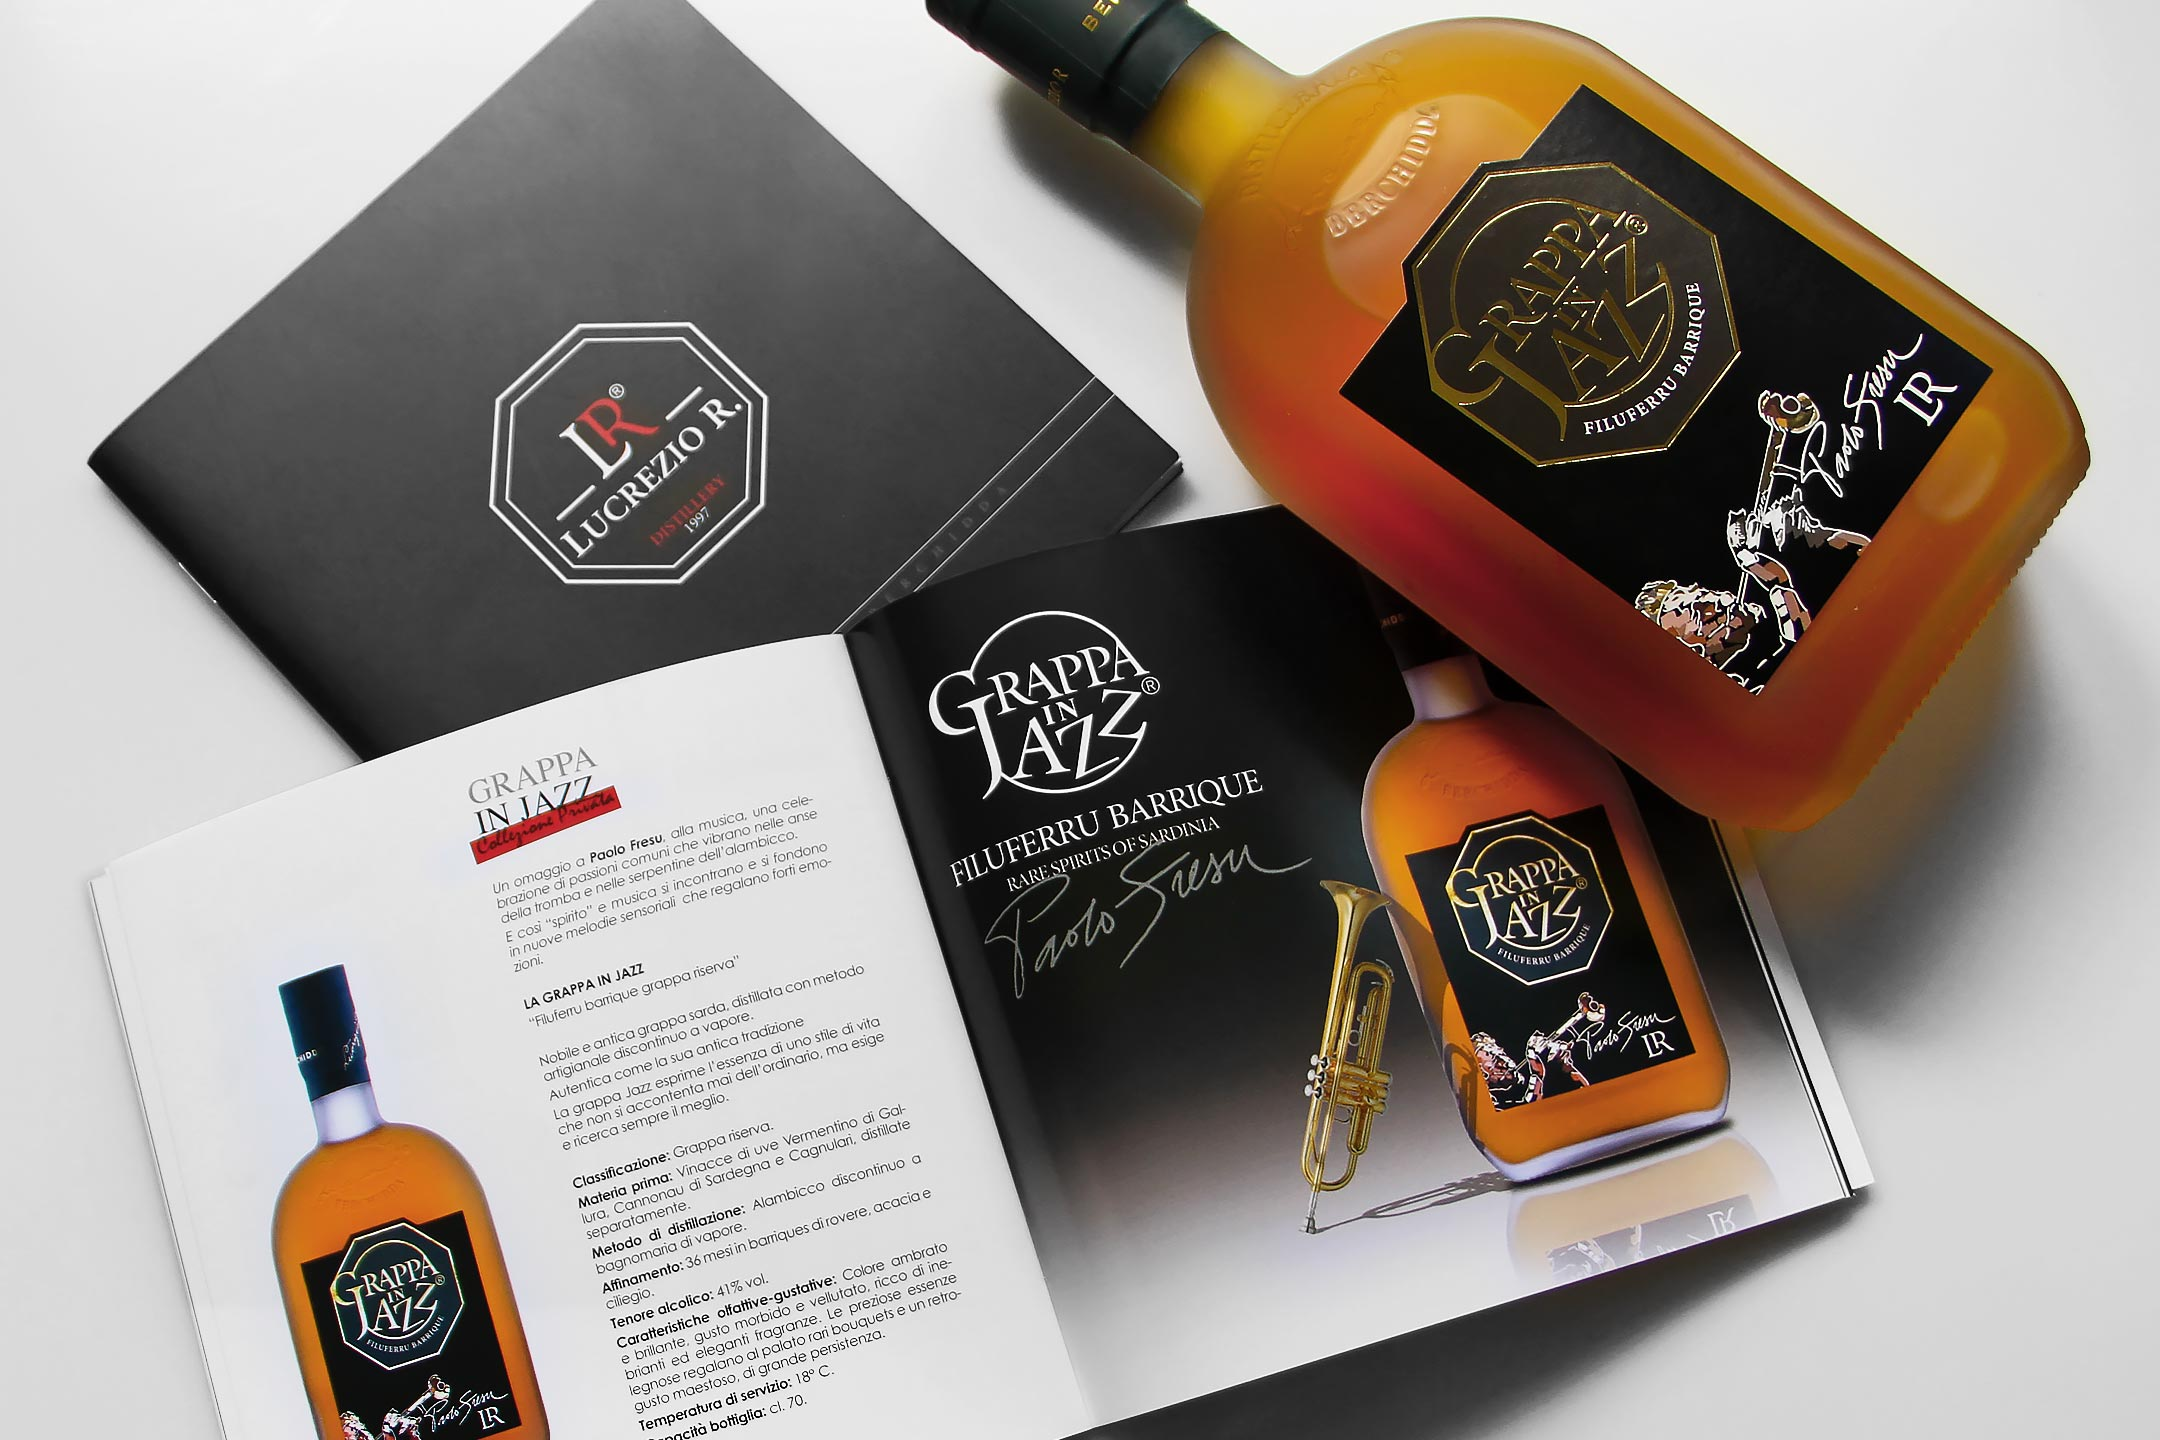 KLS_ART&DESIGN_KAPPALOGOSTUDIO_GRAFICA_PACKAGING_DESIGN_ORISTANO_SARDEGNA_GRAPPA_IN_JAZZ_LR